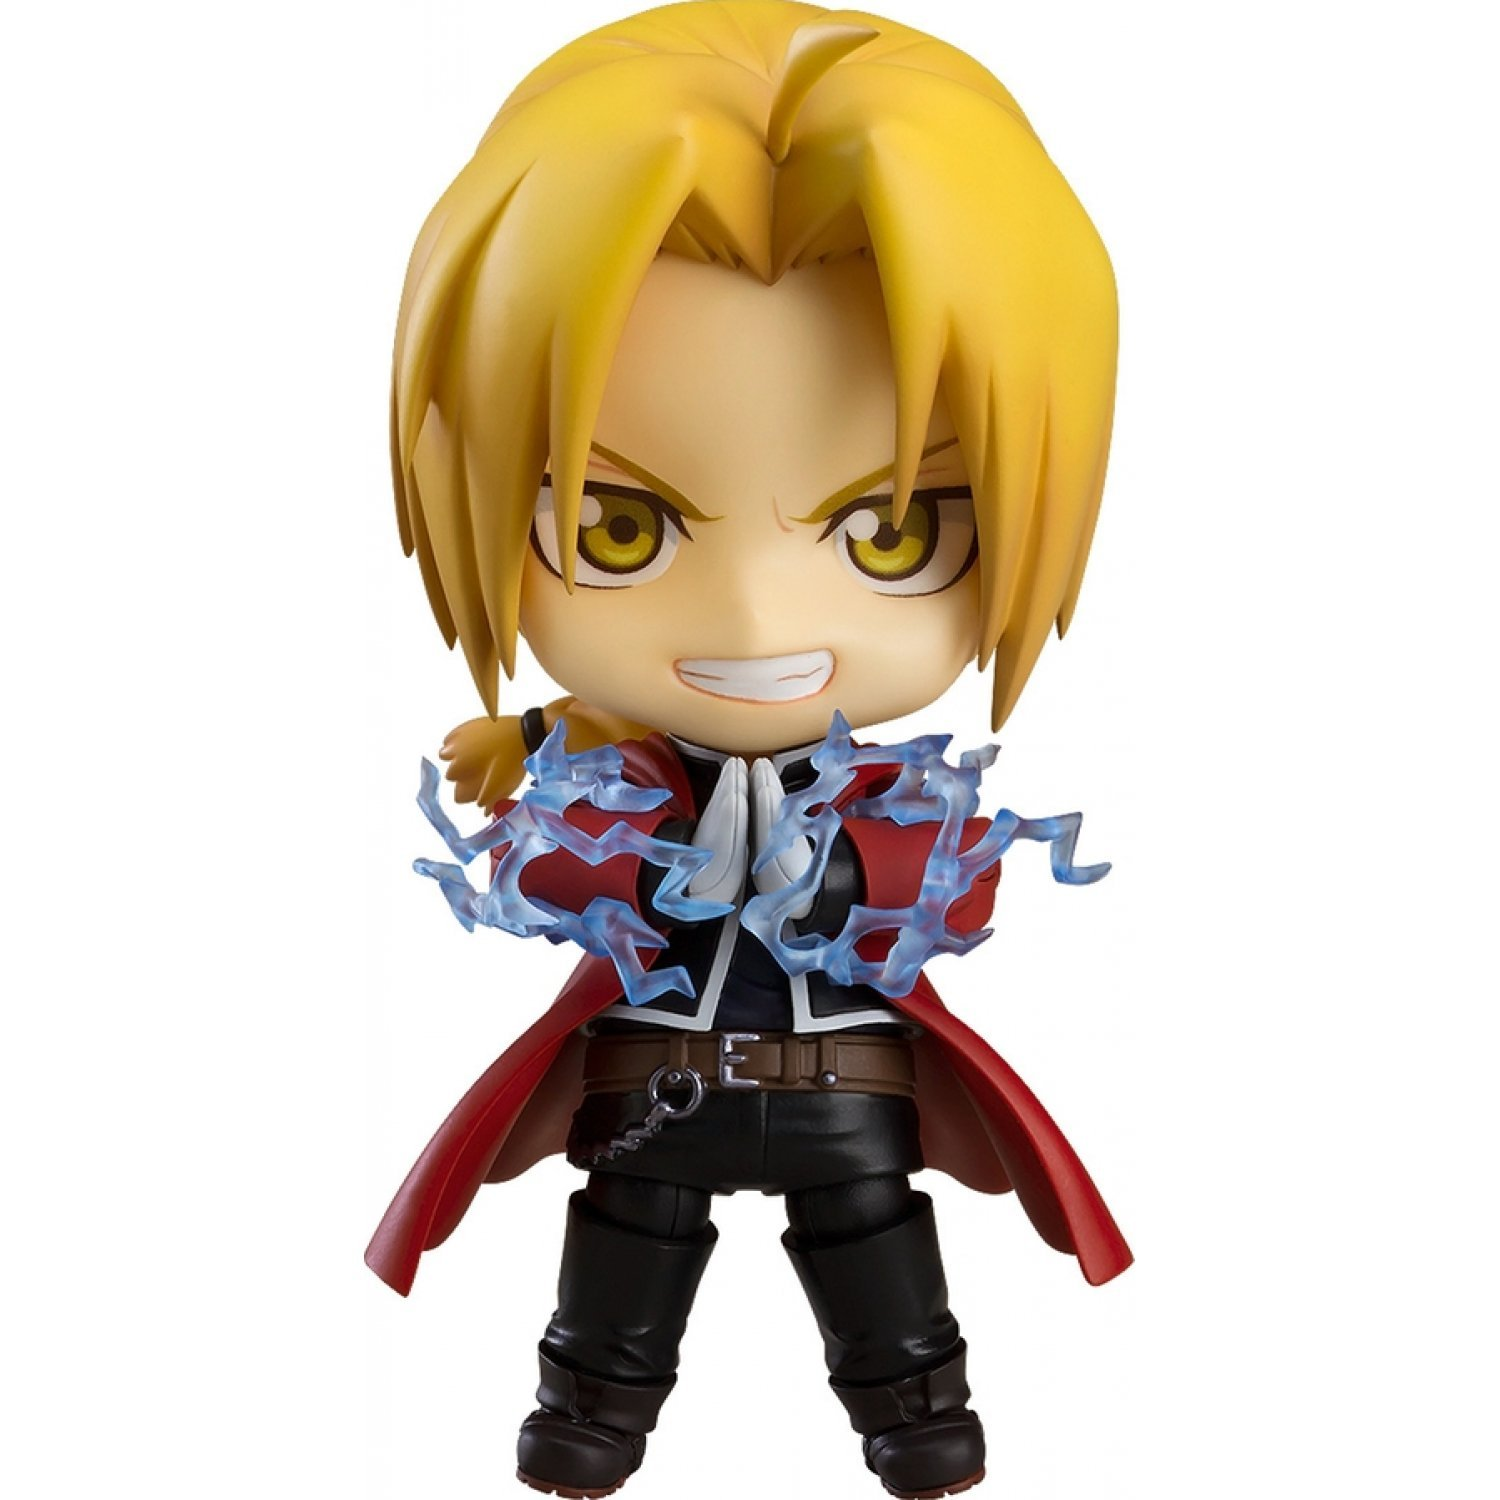 nendoroid no 788 fullmetal alchemist edward elric. Black Bedroom Furniture Sets. Home Design Ideas